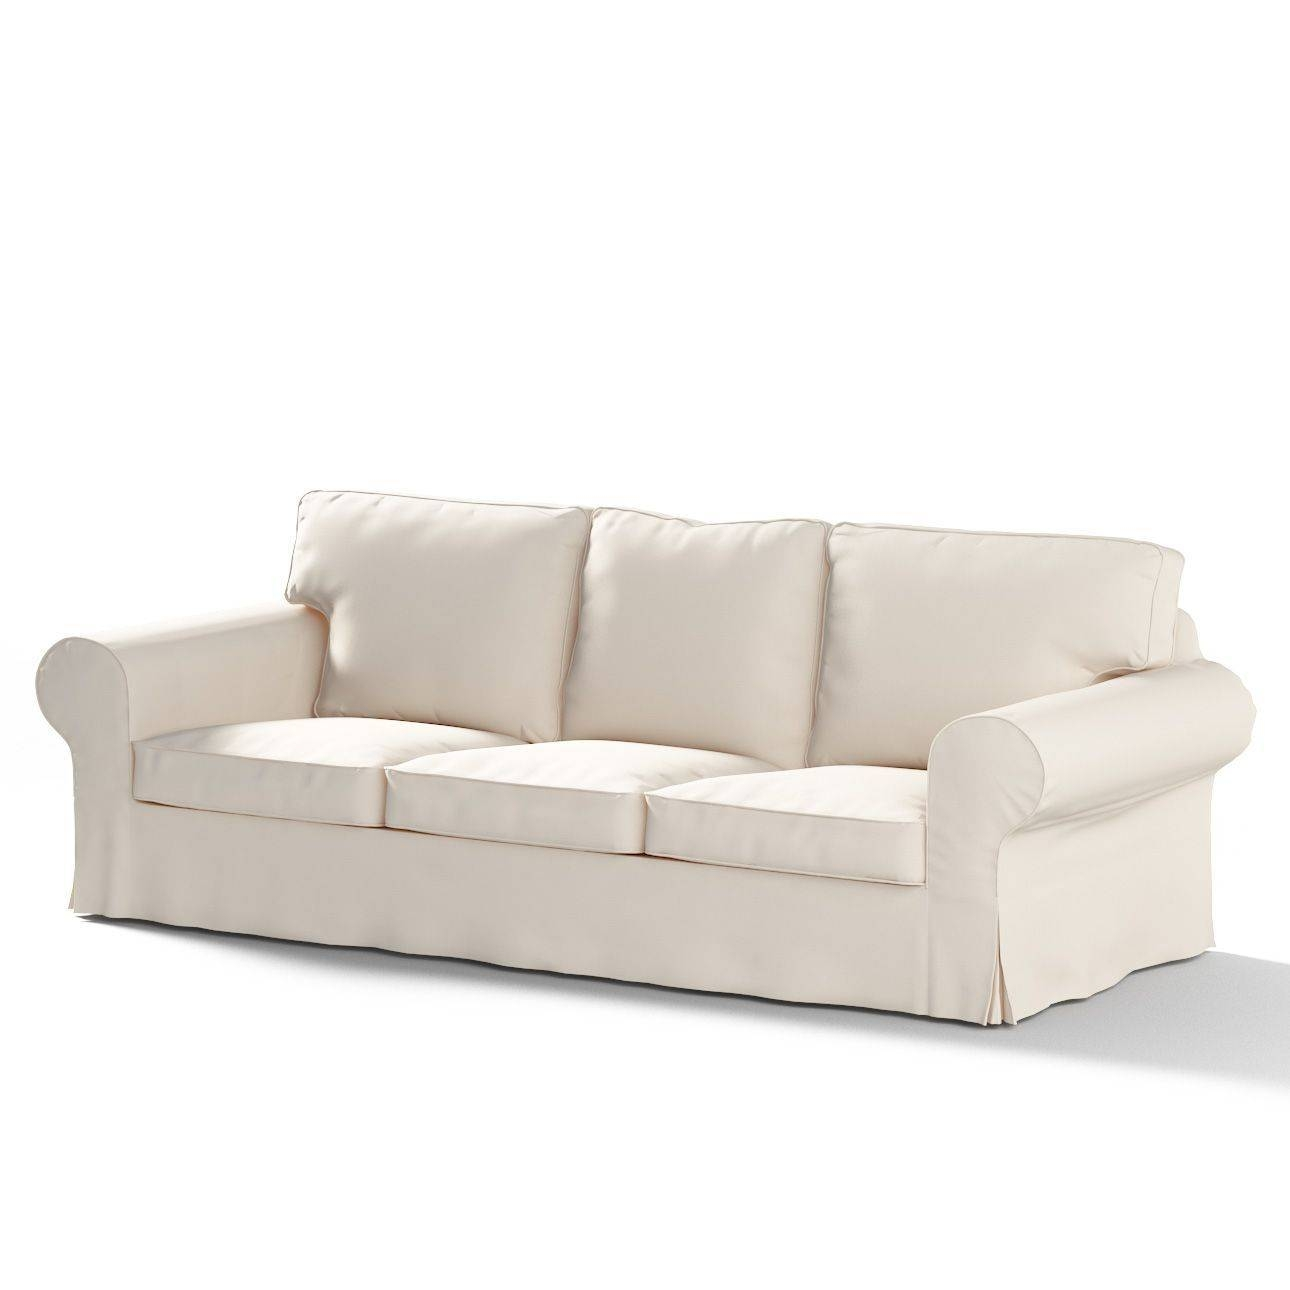 Image Gallery Of Lillberg Sofa Covers View 29 30 Photos